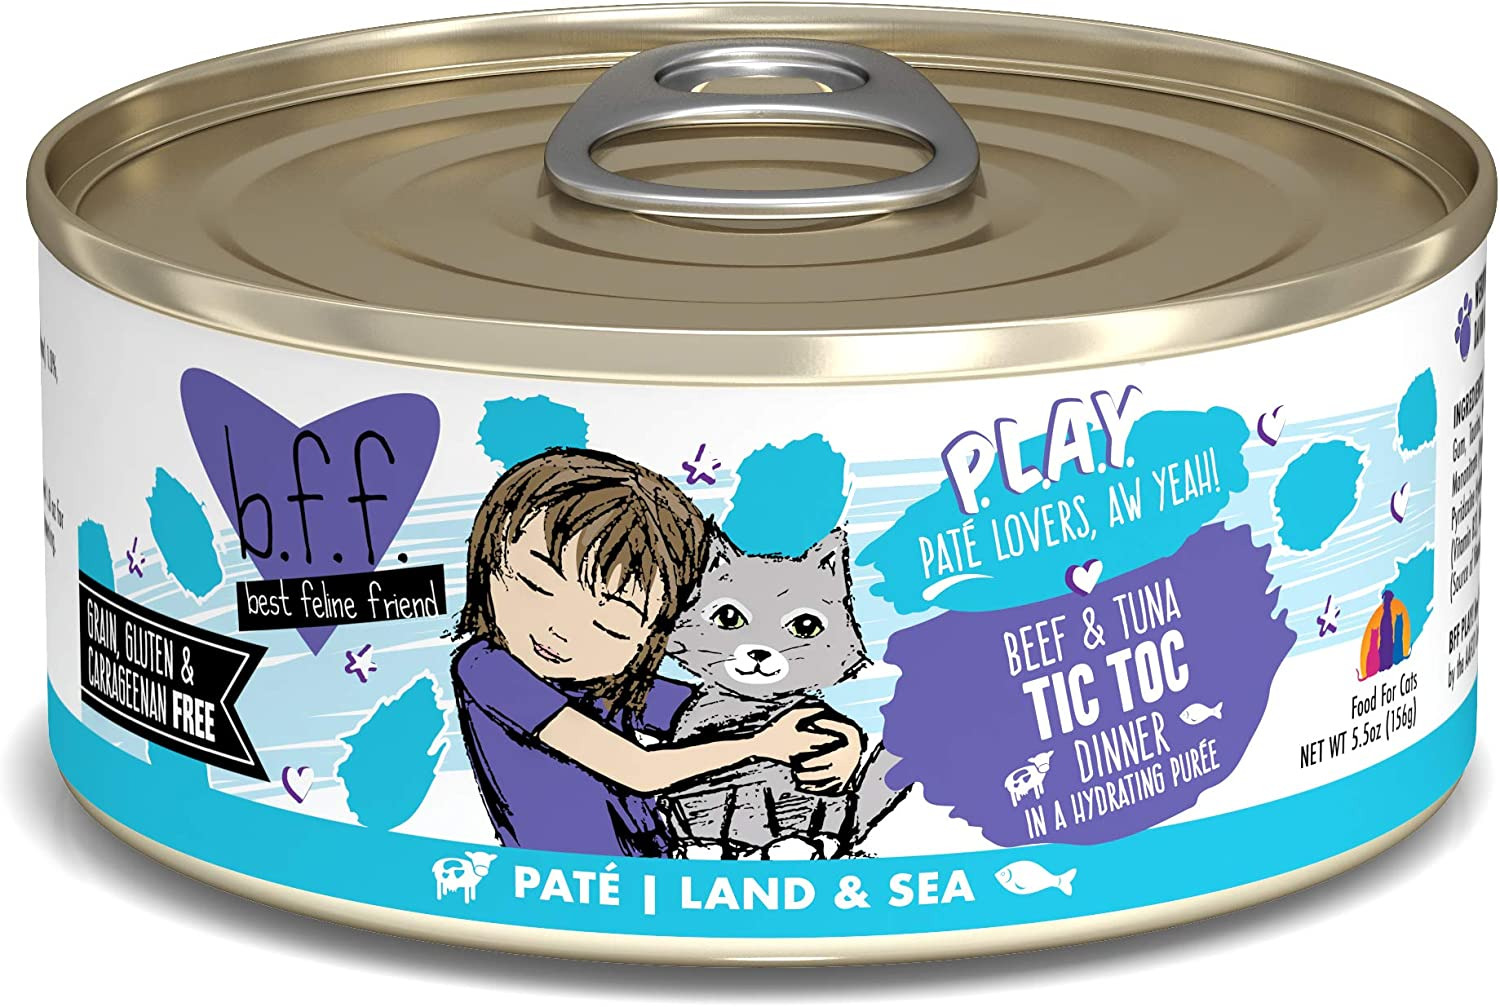 B.F.F. PLAY - Best Feline Friend Paté Lovers, Aw Yeah!, Beef & Tuna Tic Toc with Beef & Tuna, 5.5oz Can (Pack of 8)